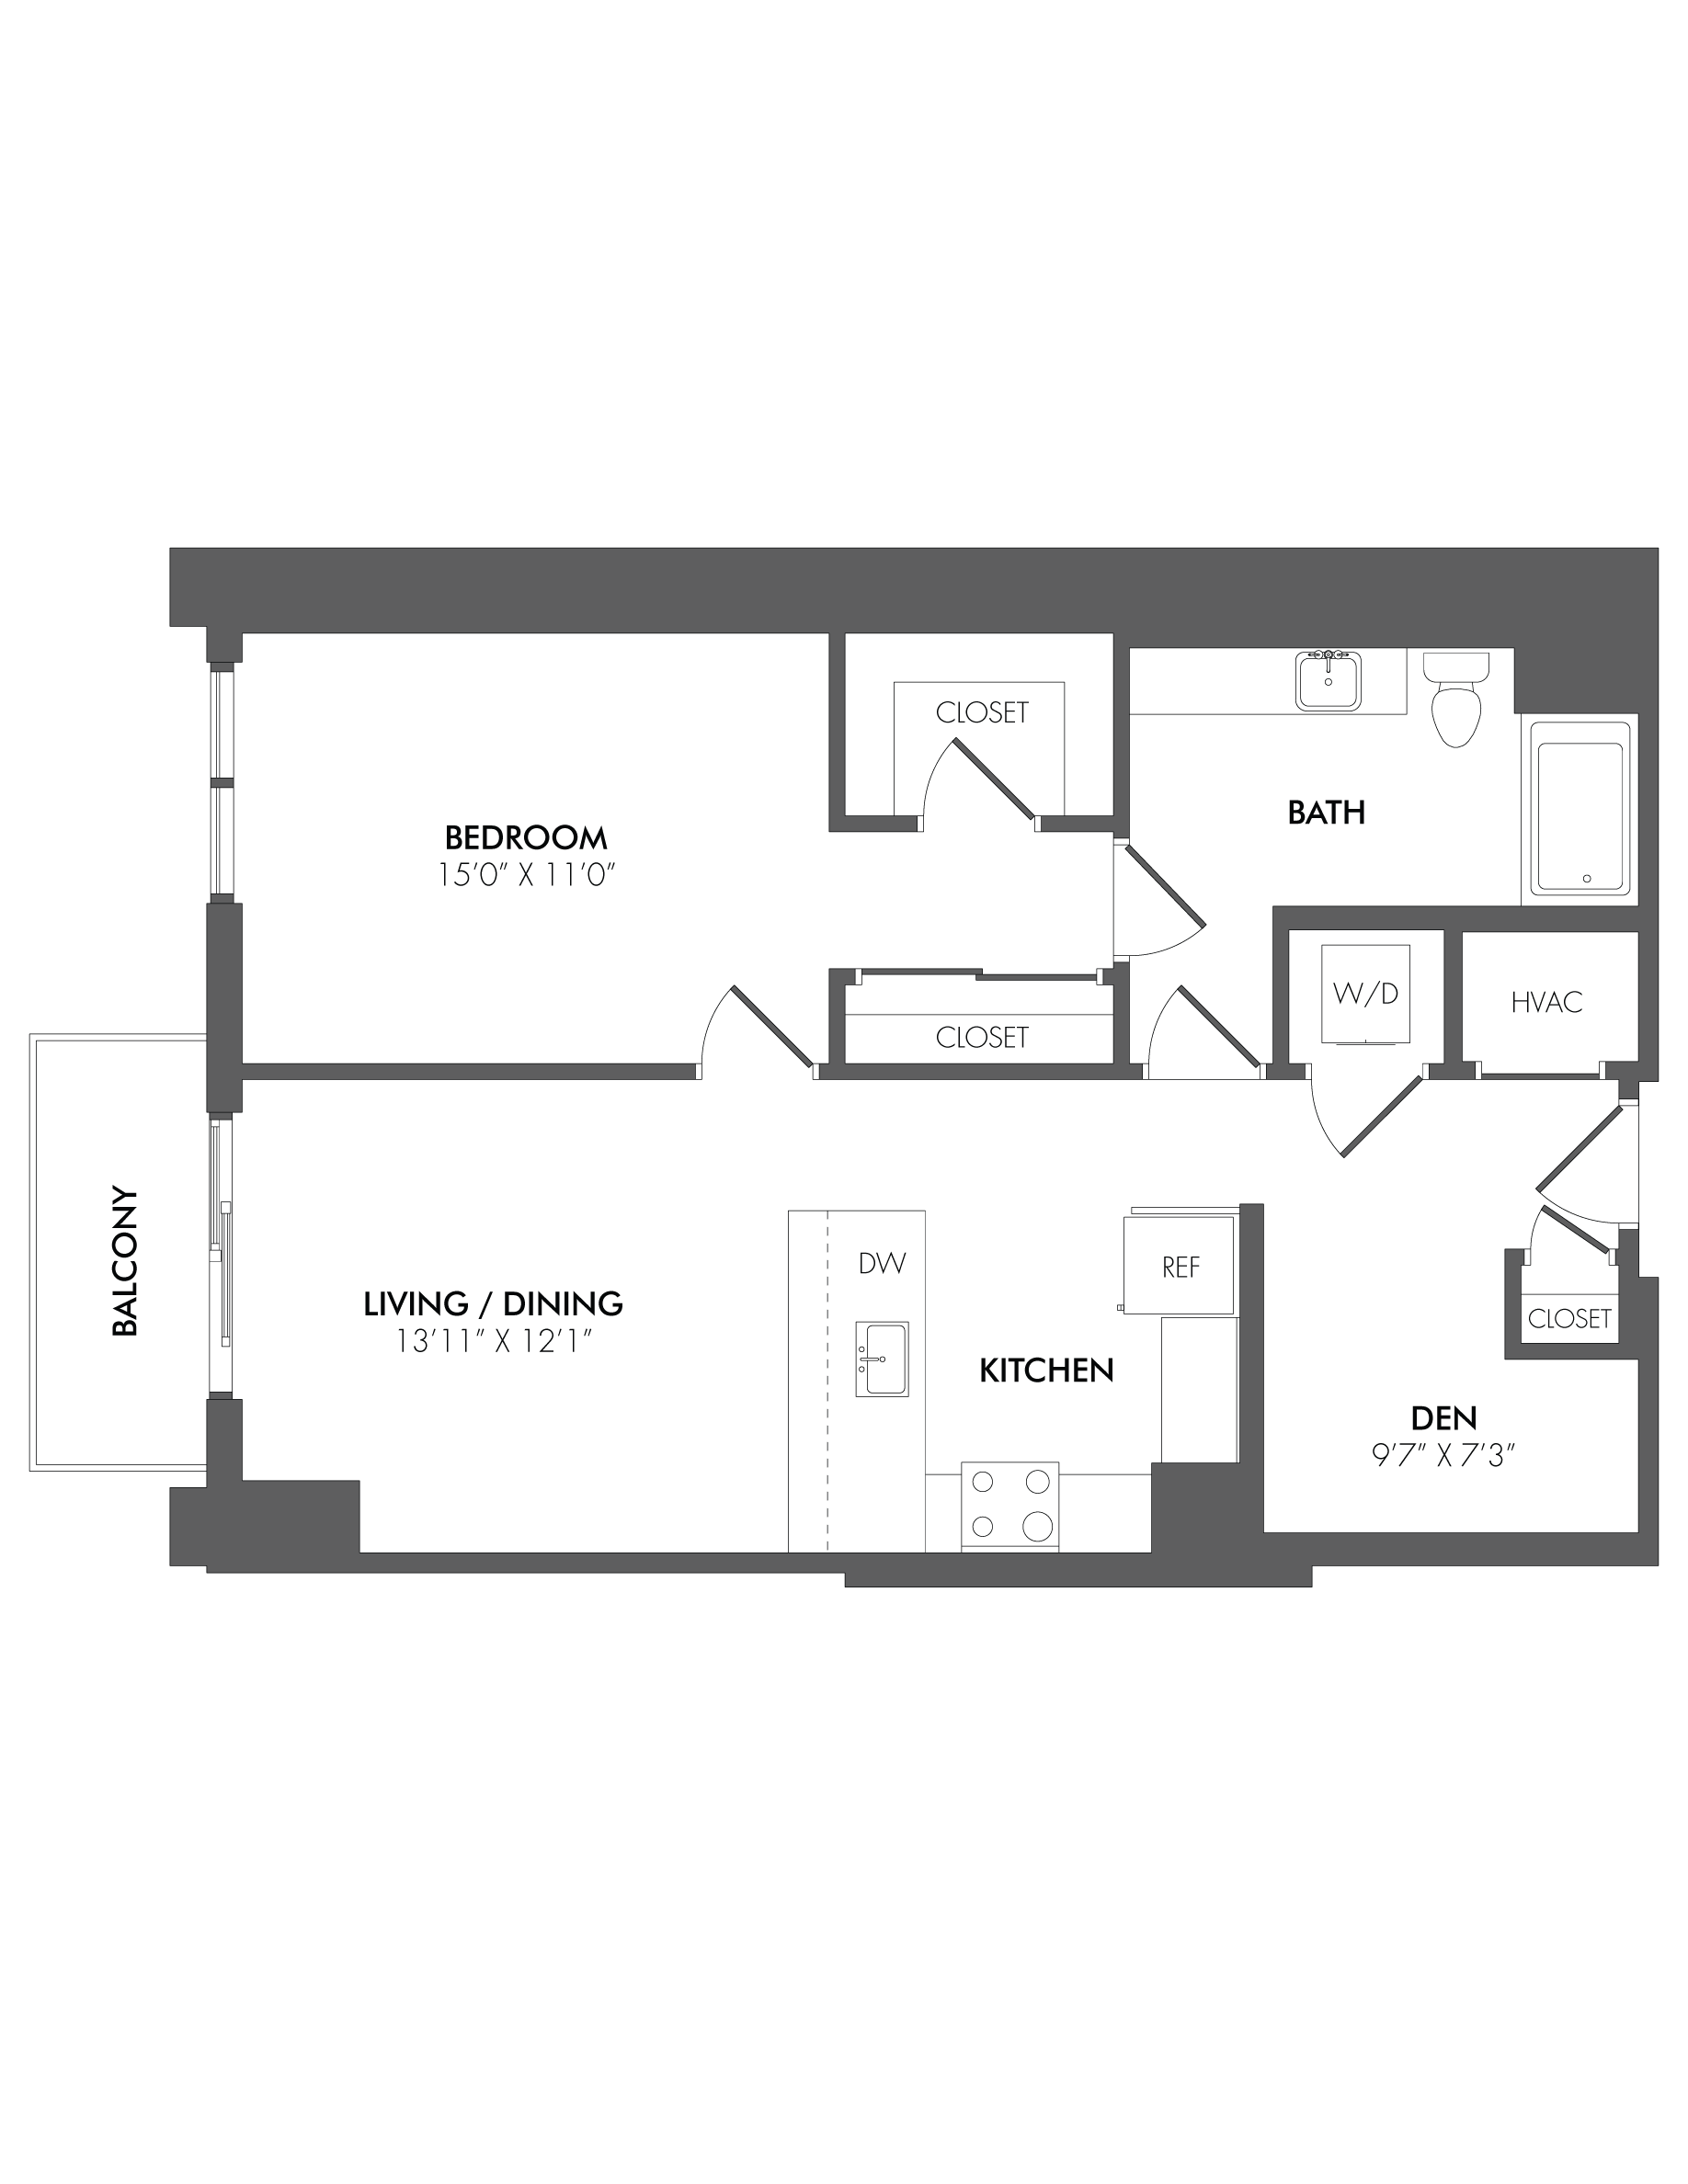 Apartment 2608 floorplan